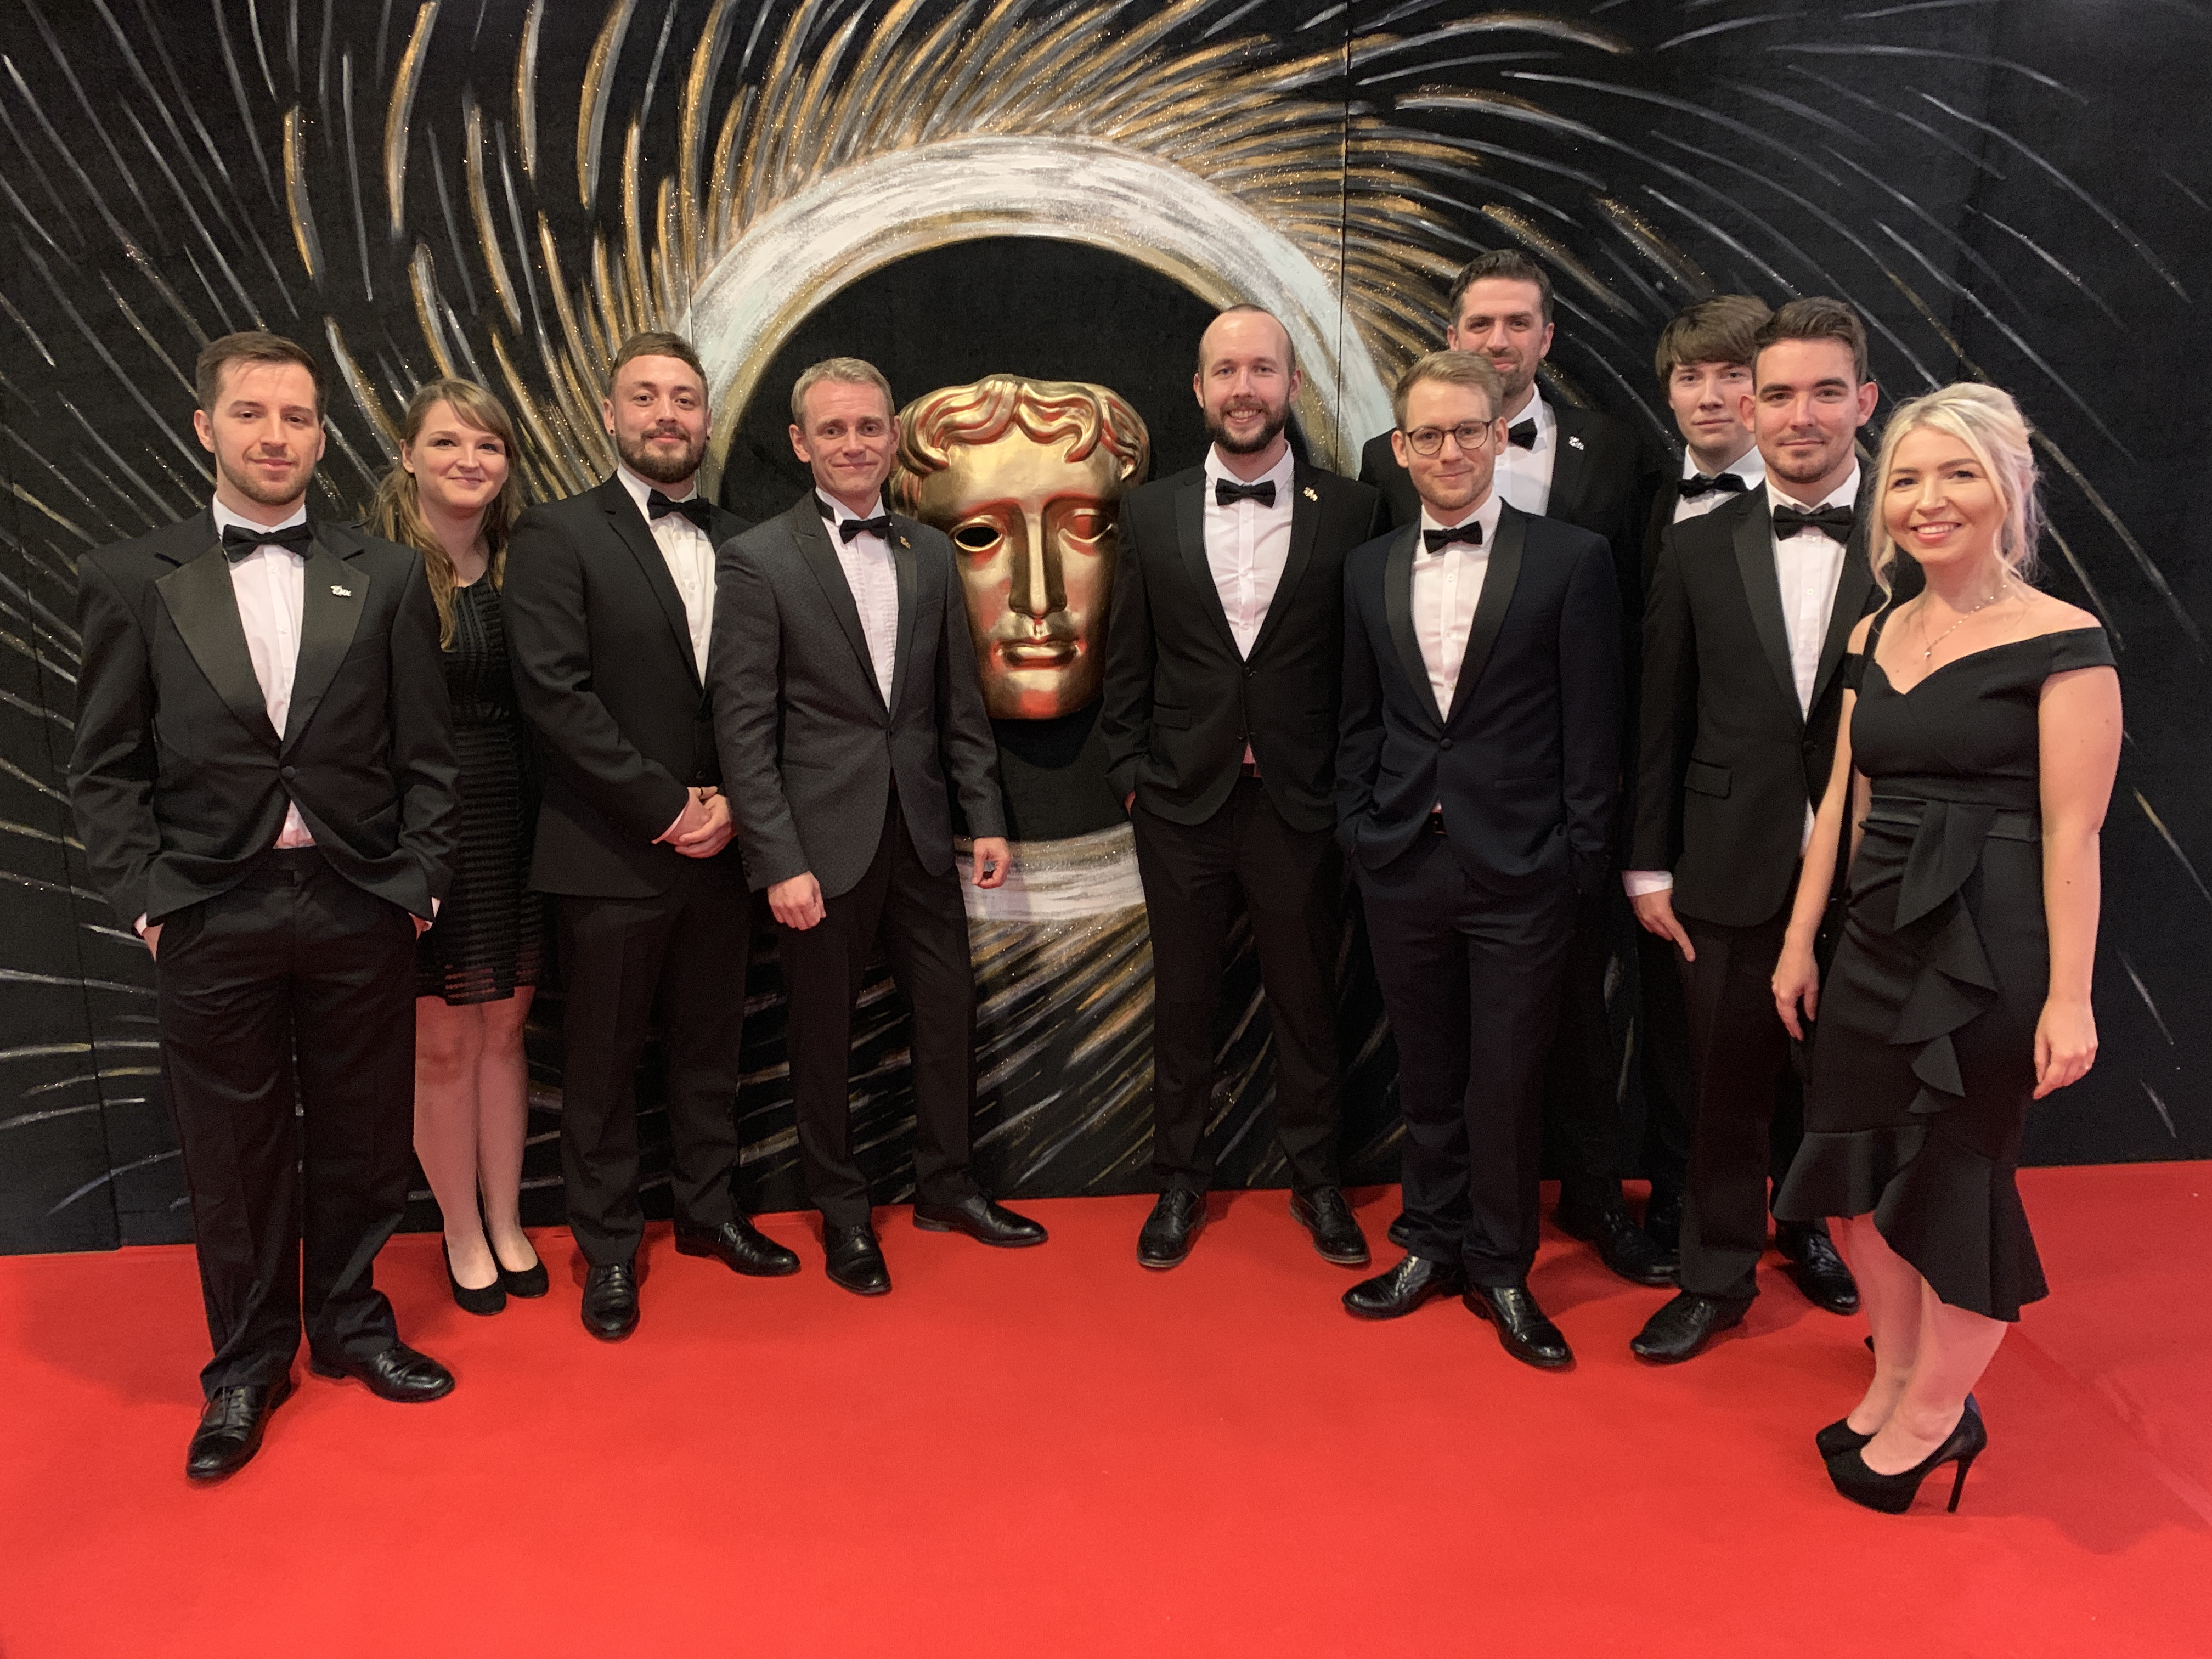 Wales Interactive team on the red carpet at the BAFTAs.